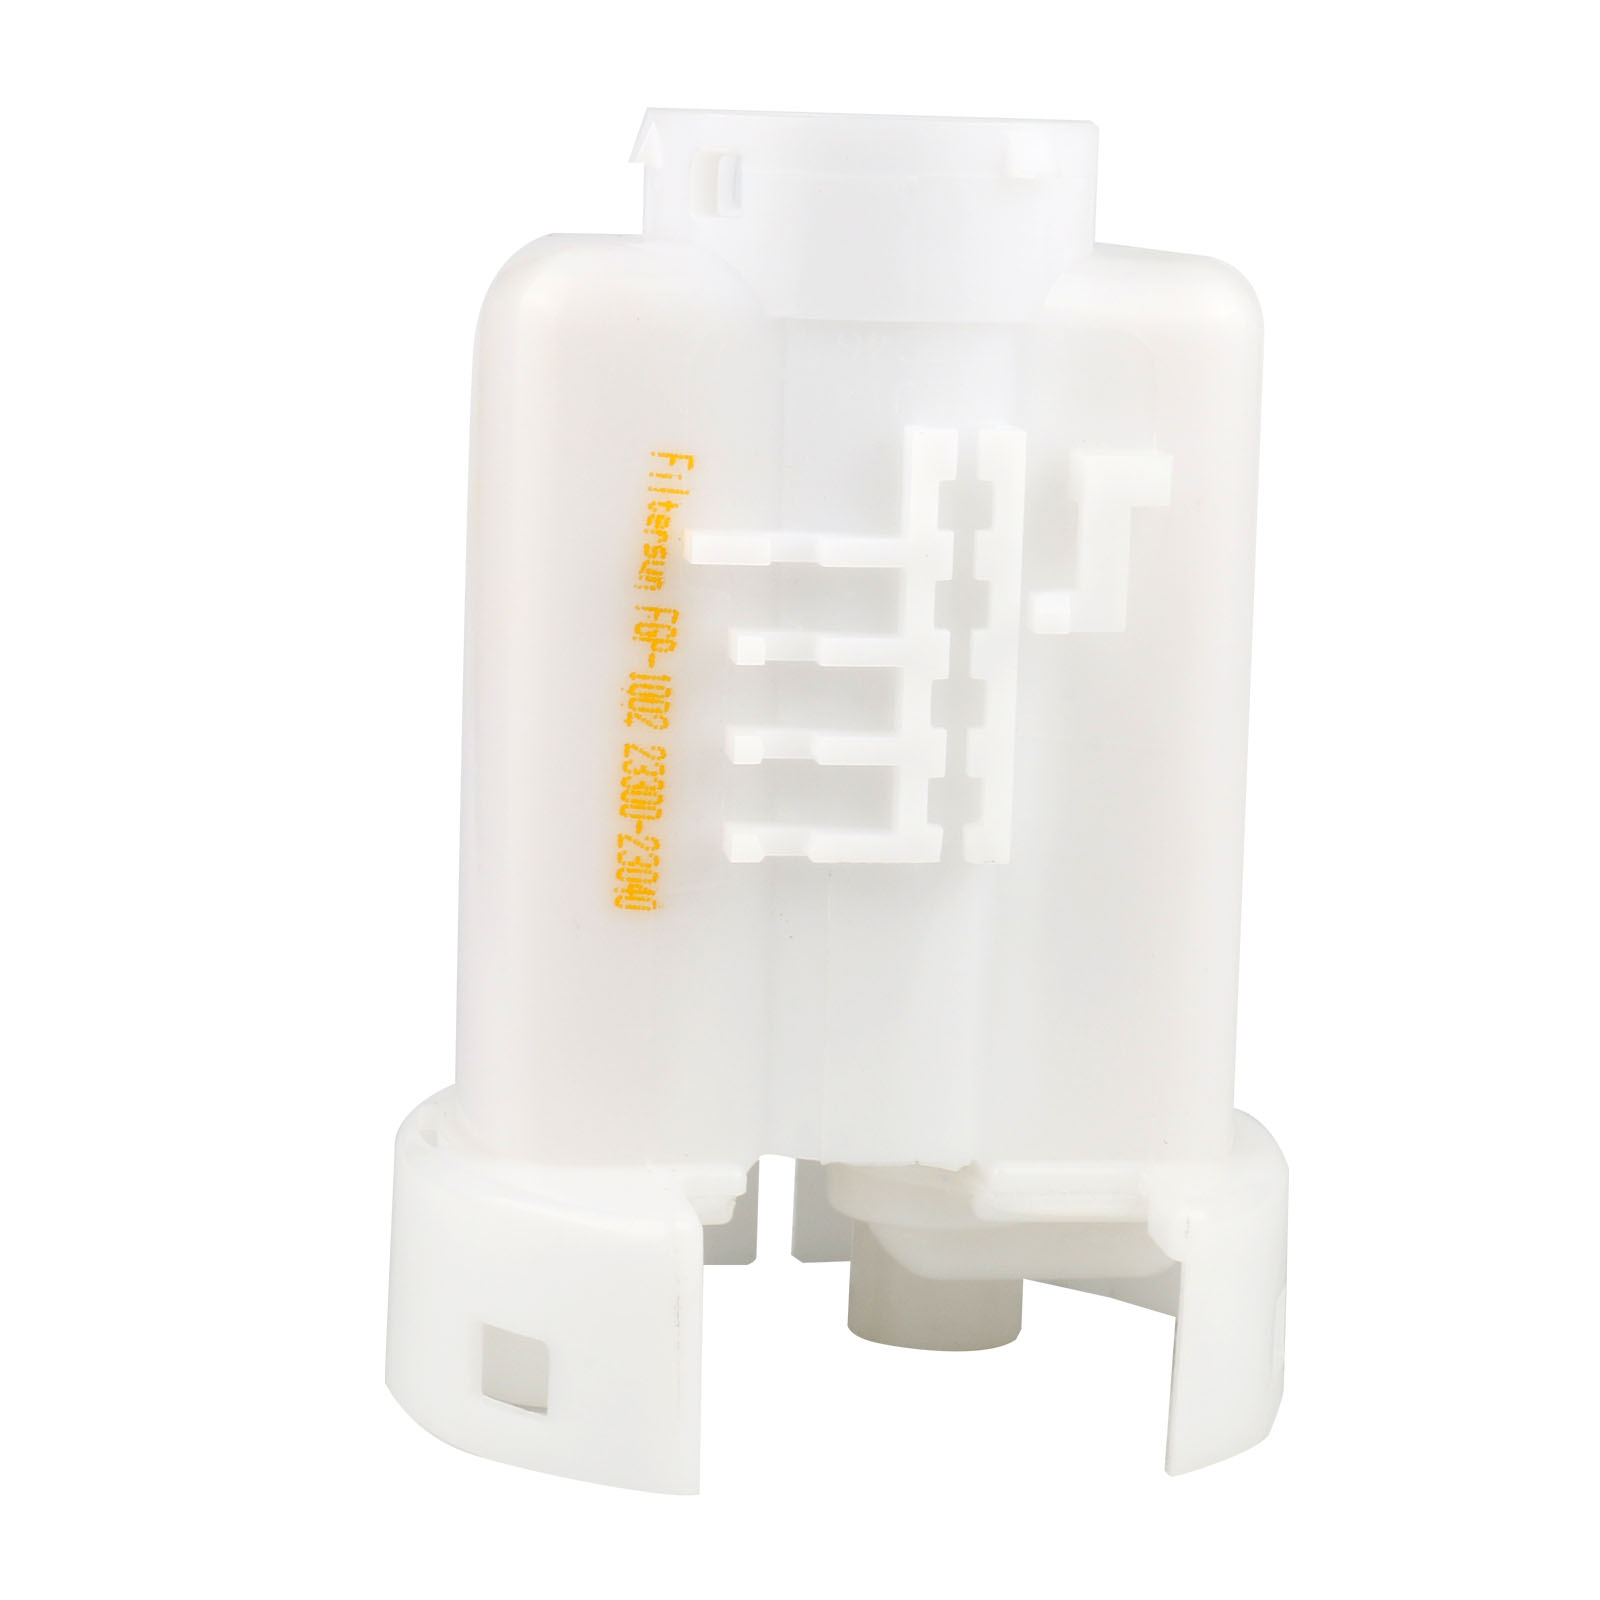 car gas gasoline petrol fuel filter oe 23300 23040 replacement parts for toyota daihatsu charade [ 1600 x 1600 Pixel ]